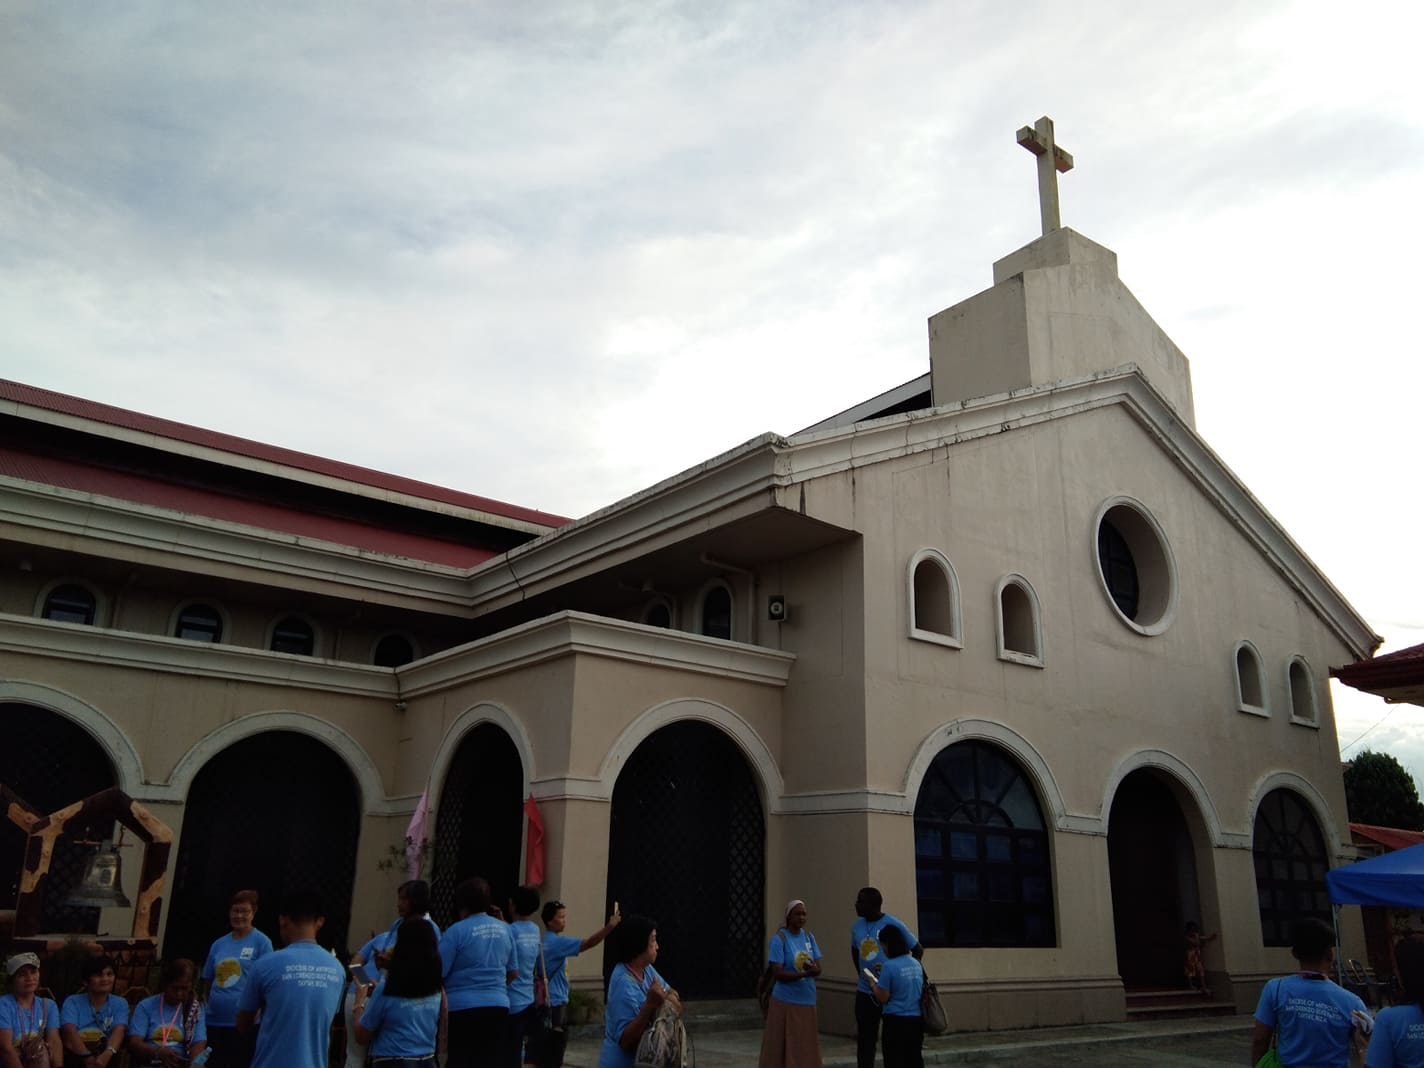 St. Lawrence in Balanggiga